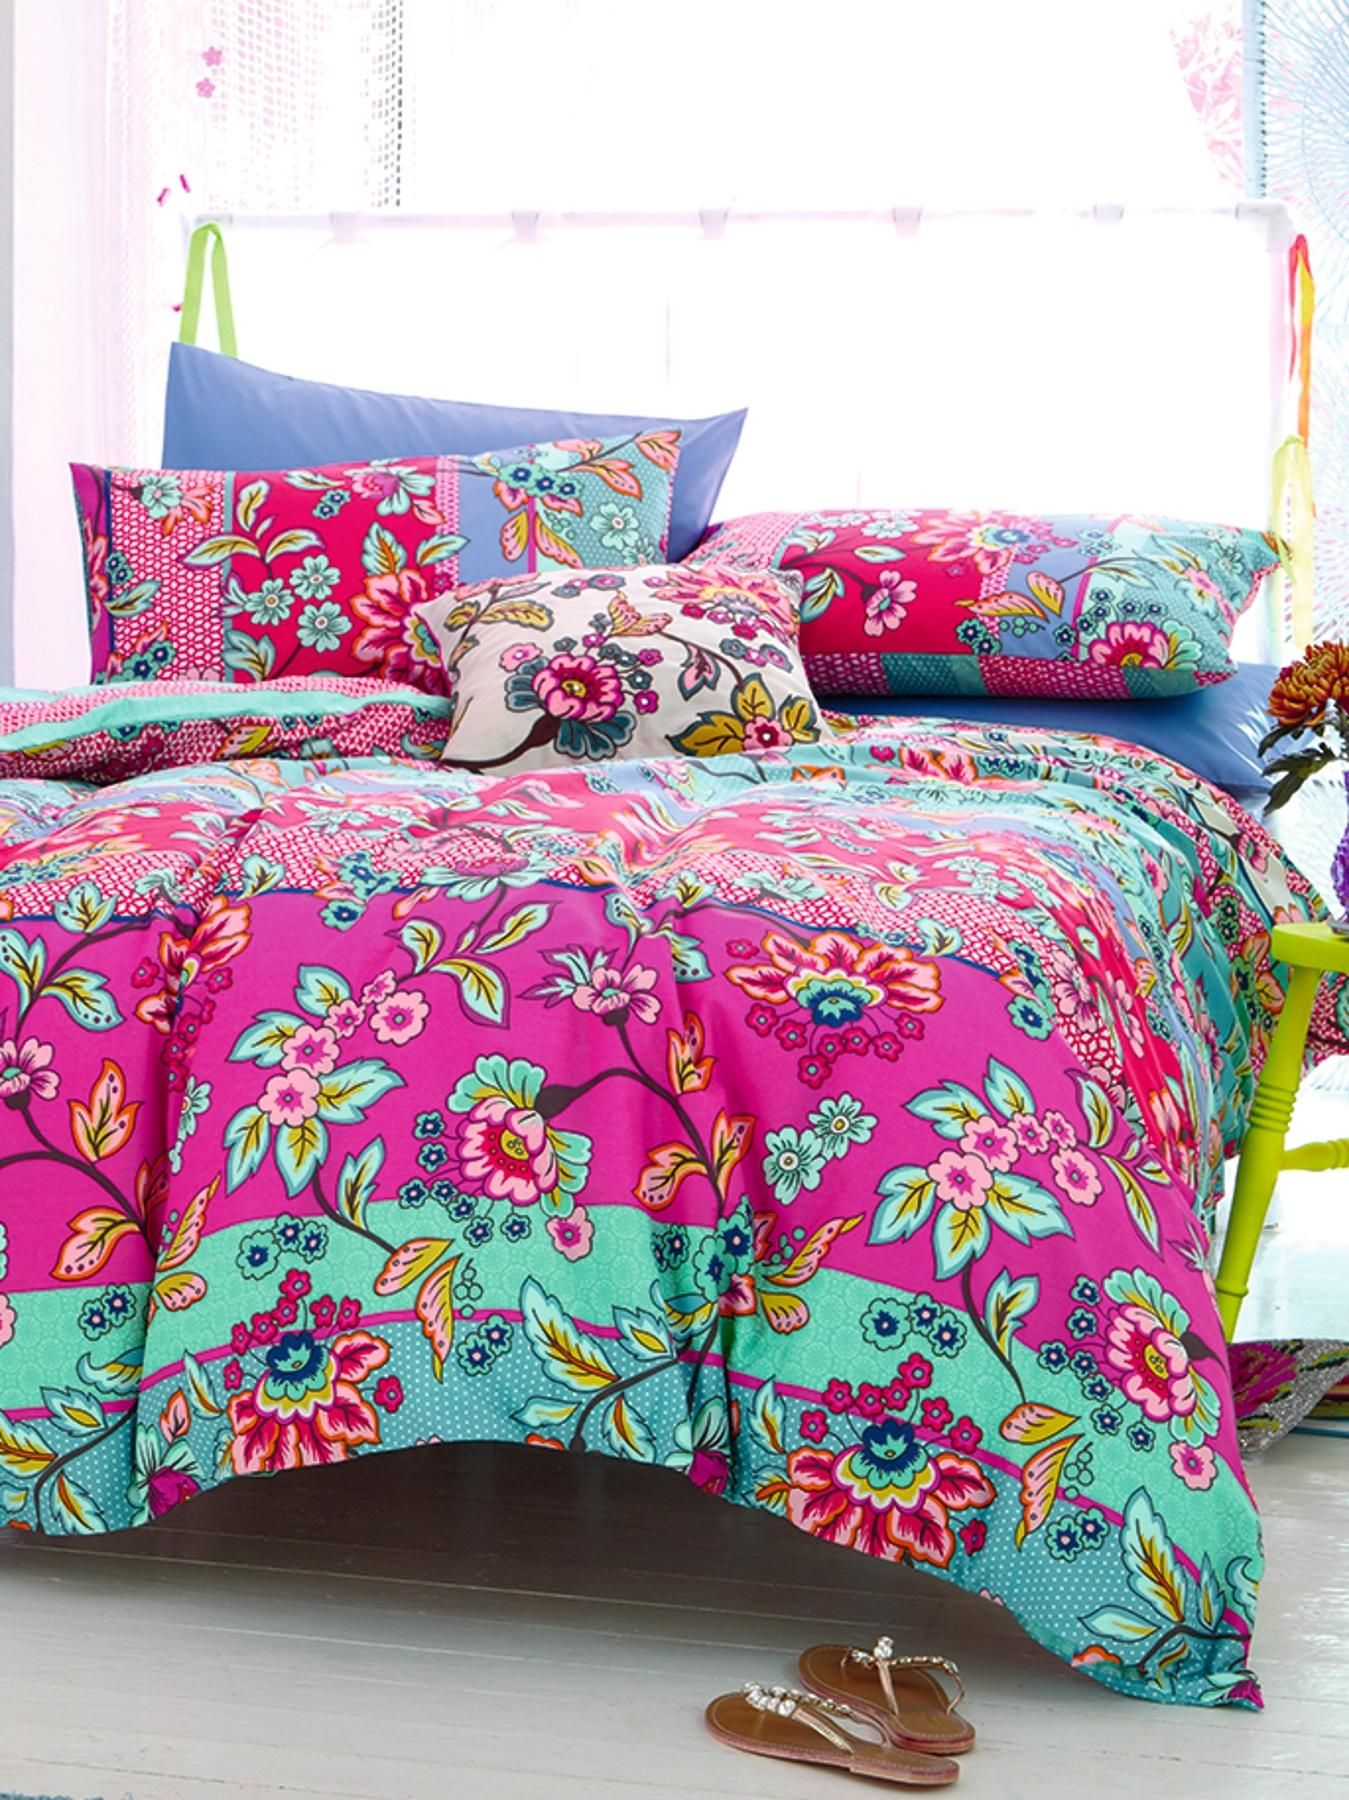 Accessorize Fable Folksy Duvet Cover and Pillowcase Set